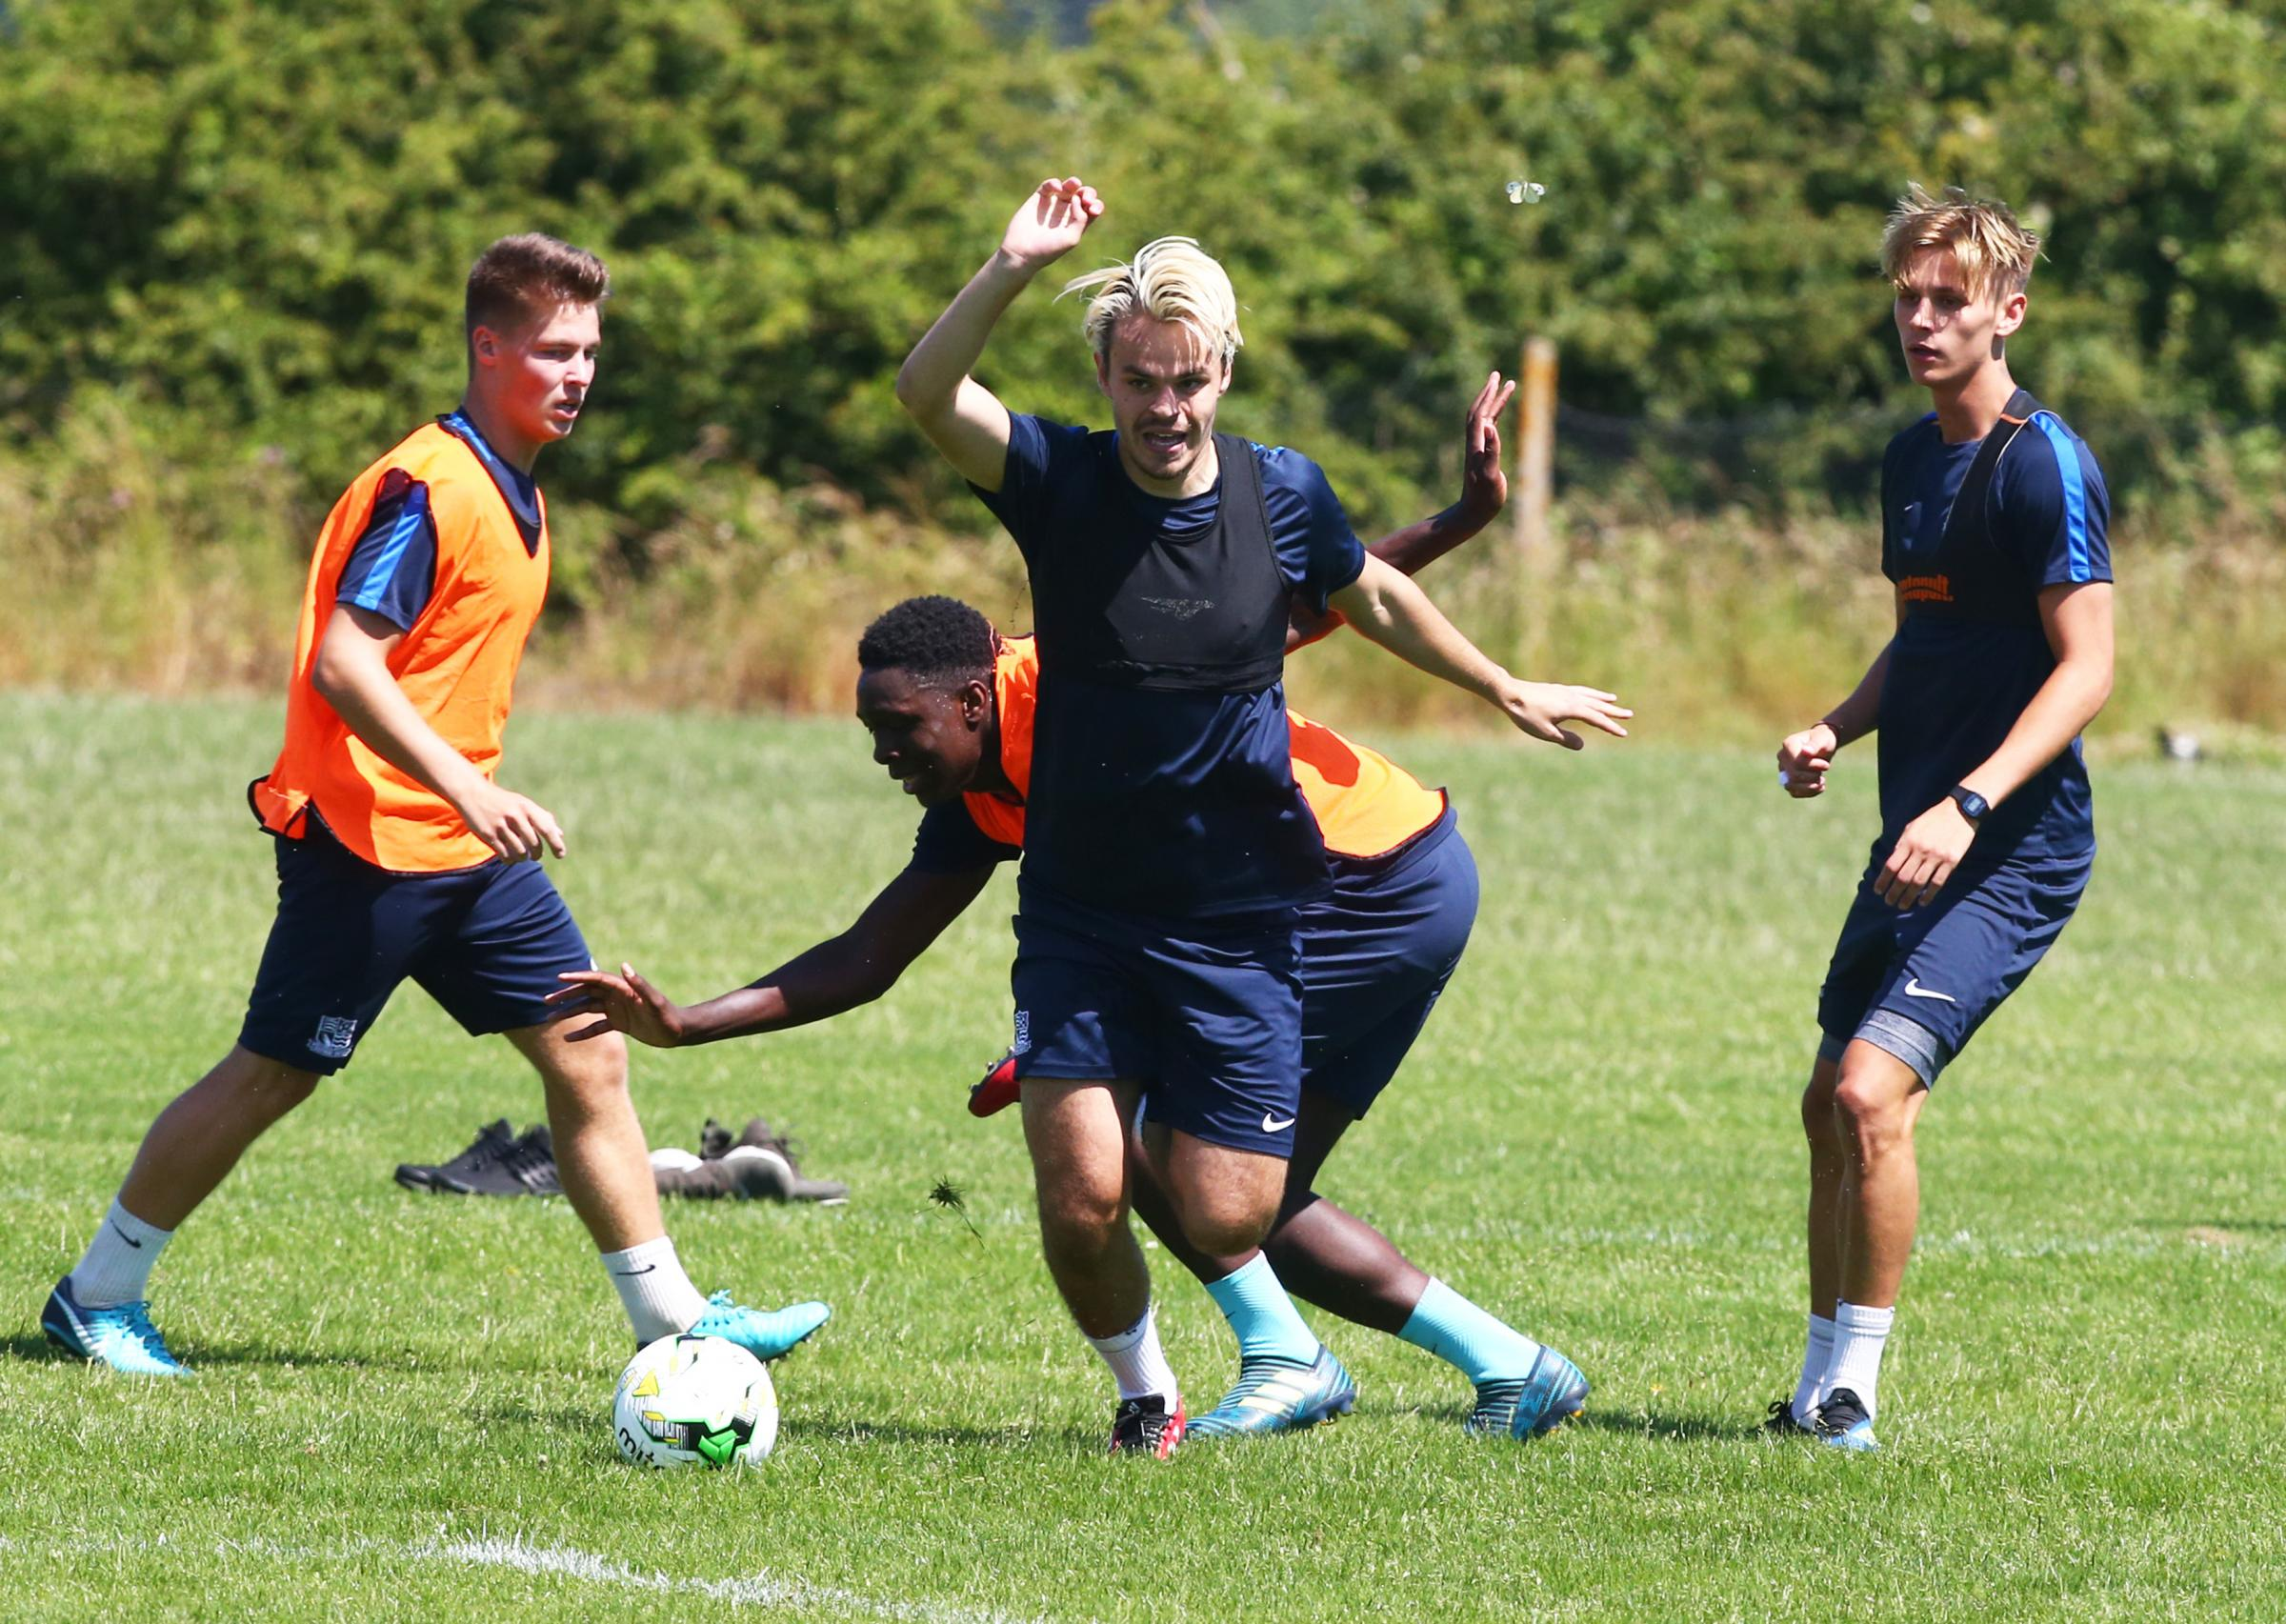 Hard at work - Southend United's under 23 team in training